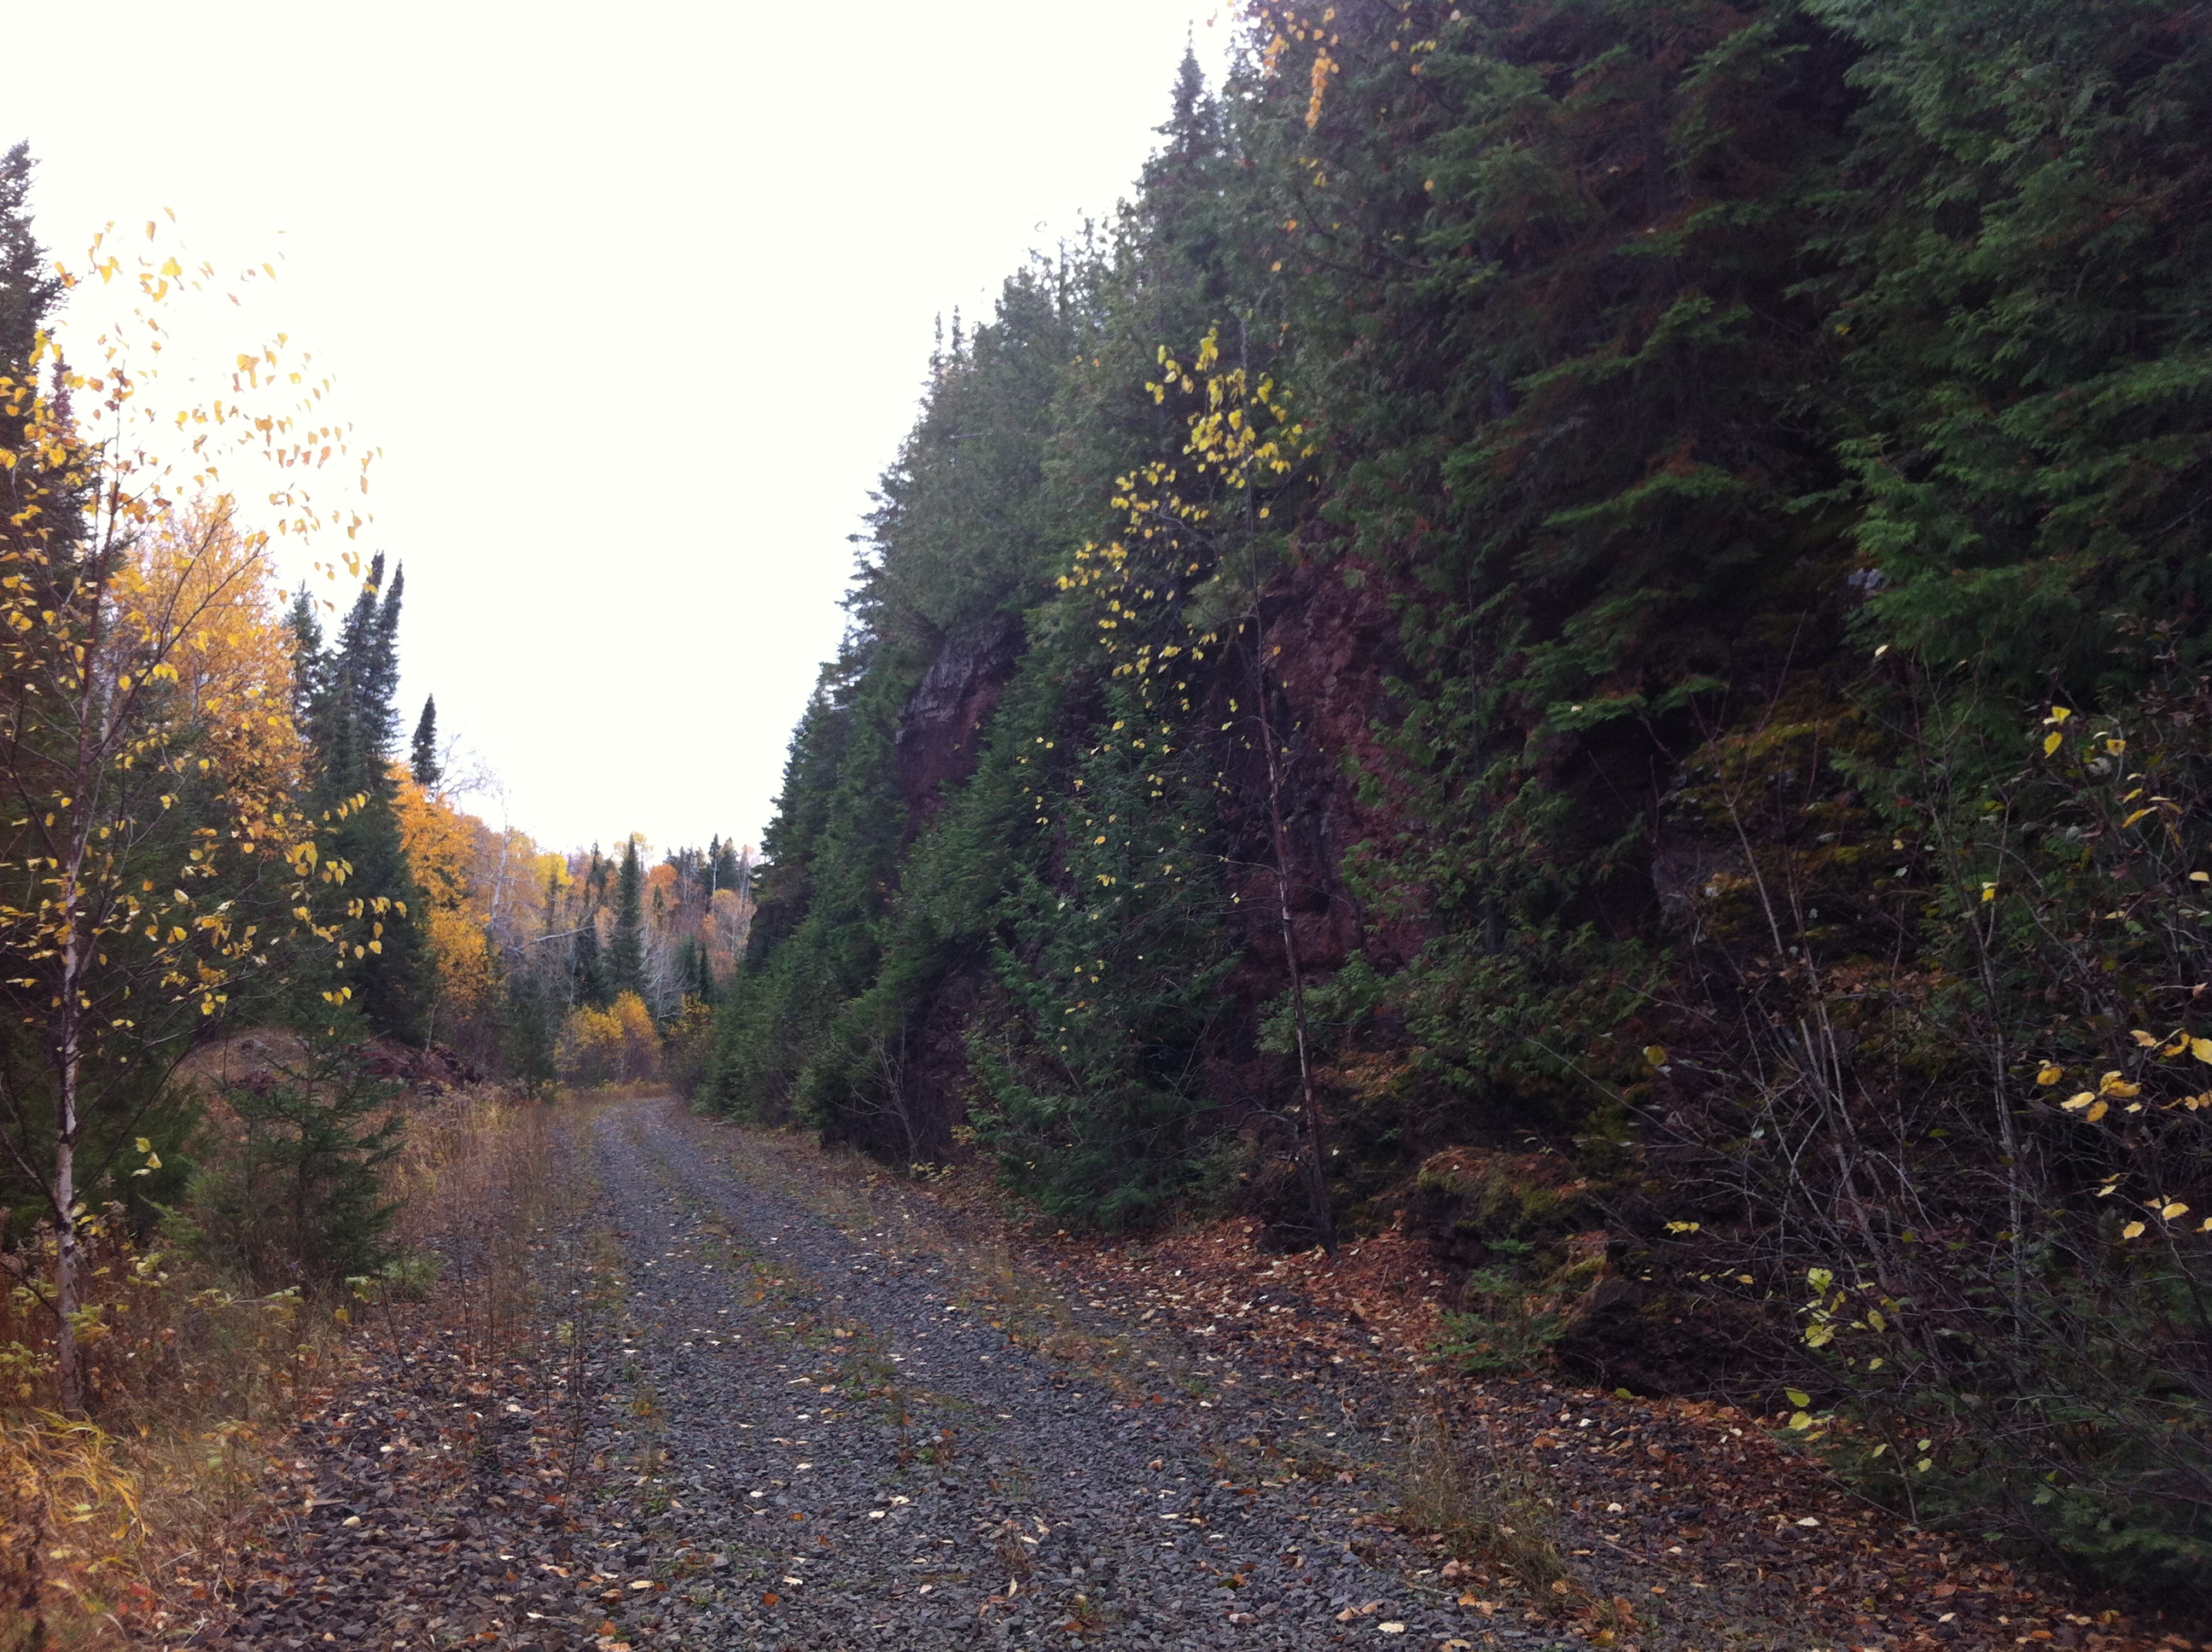 kinghorn trails near pass lake